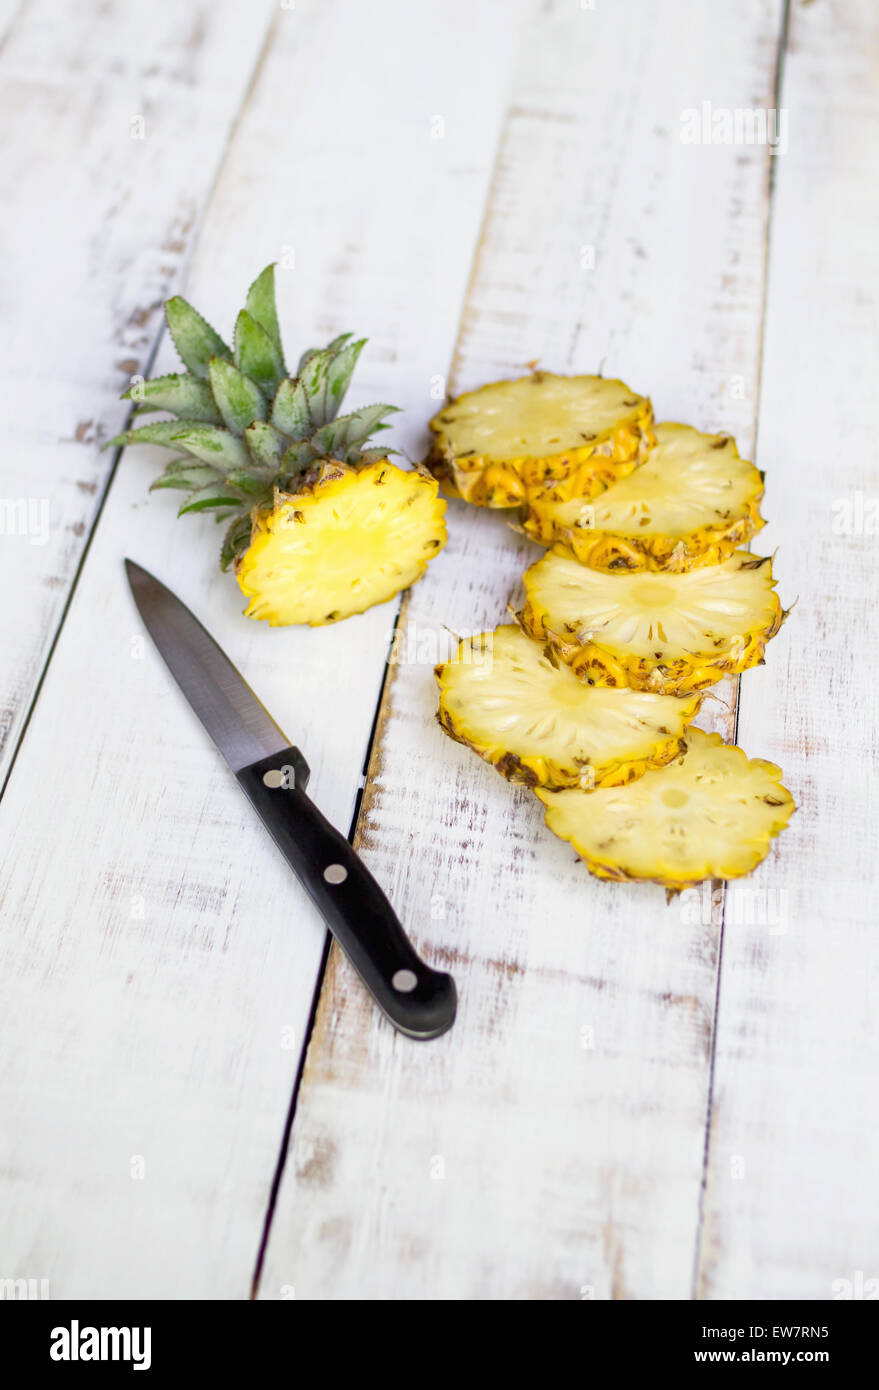 Still life of a pineapple sliced into pieces with a knife on a wooden table - Stock Image